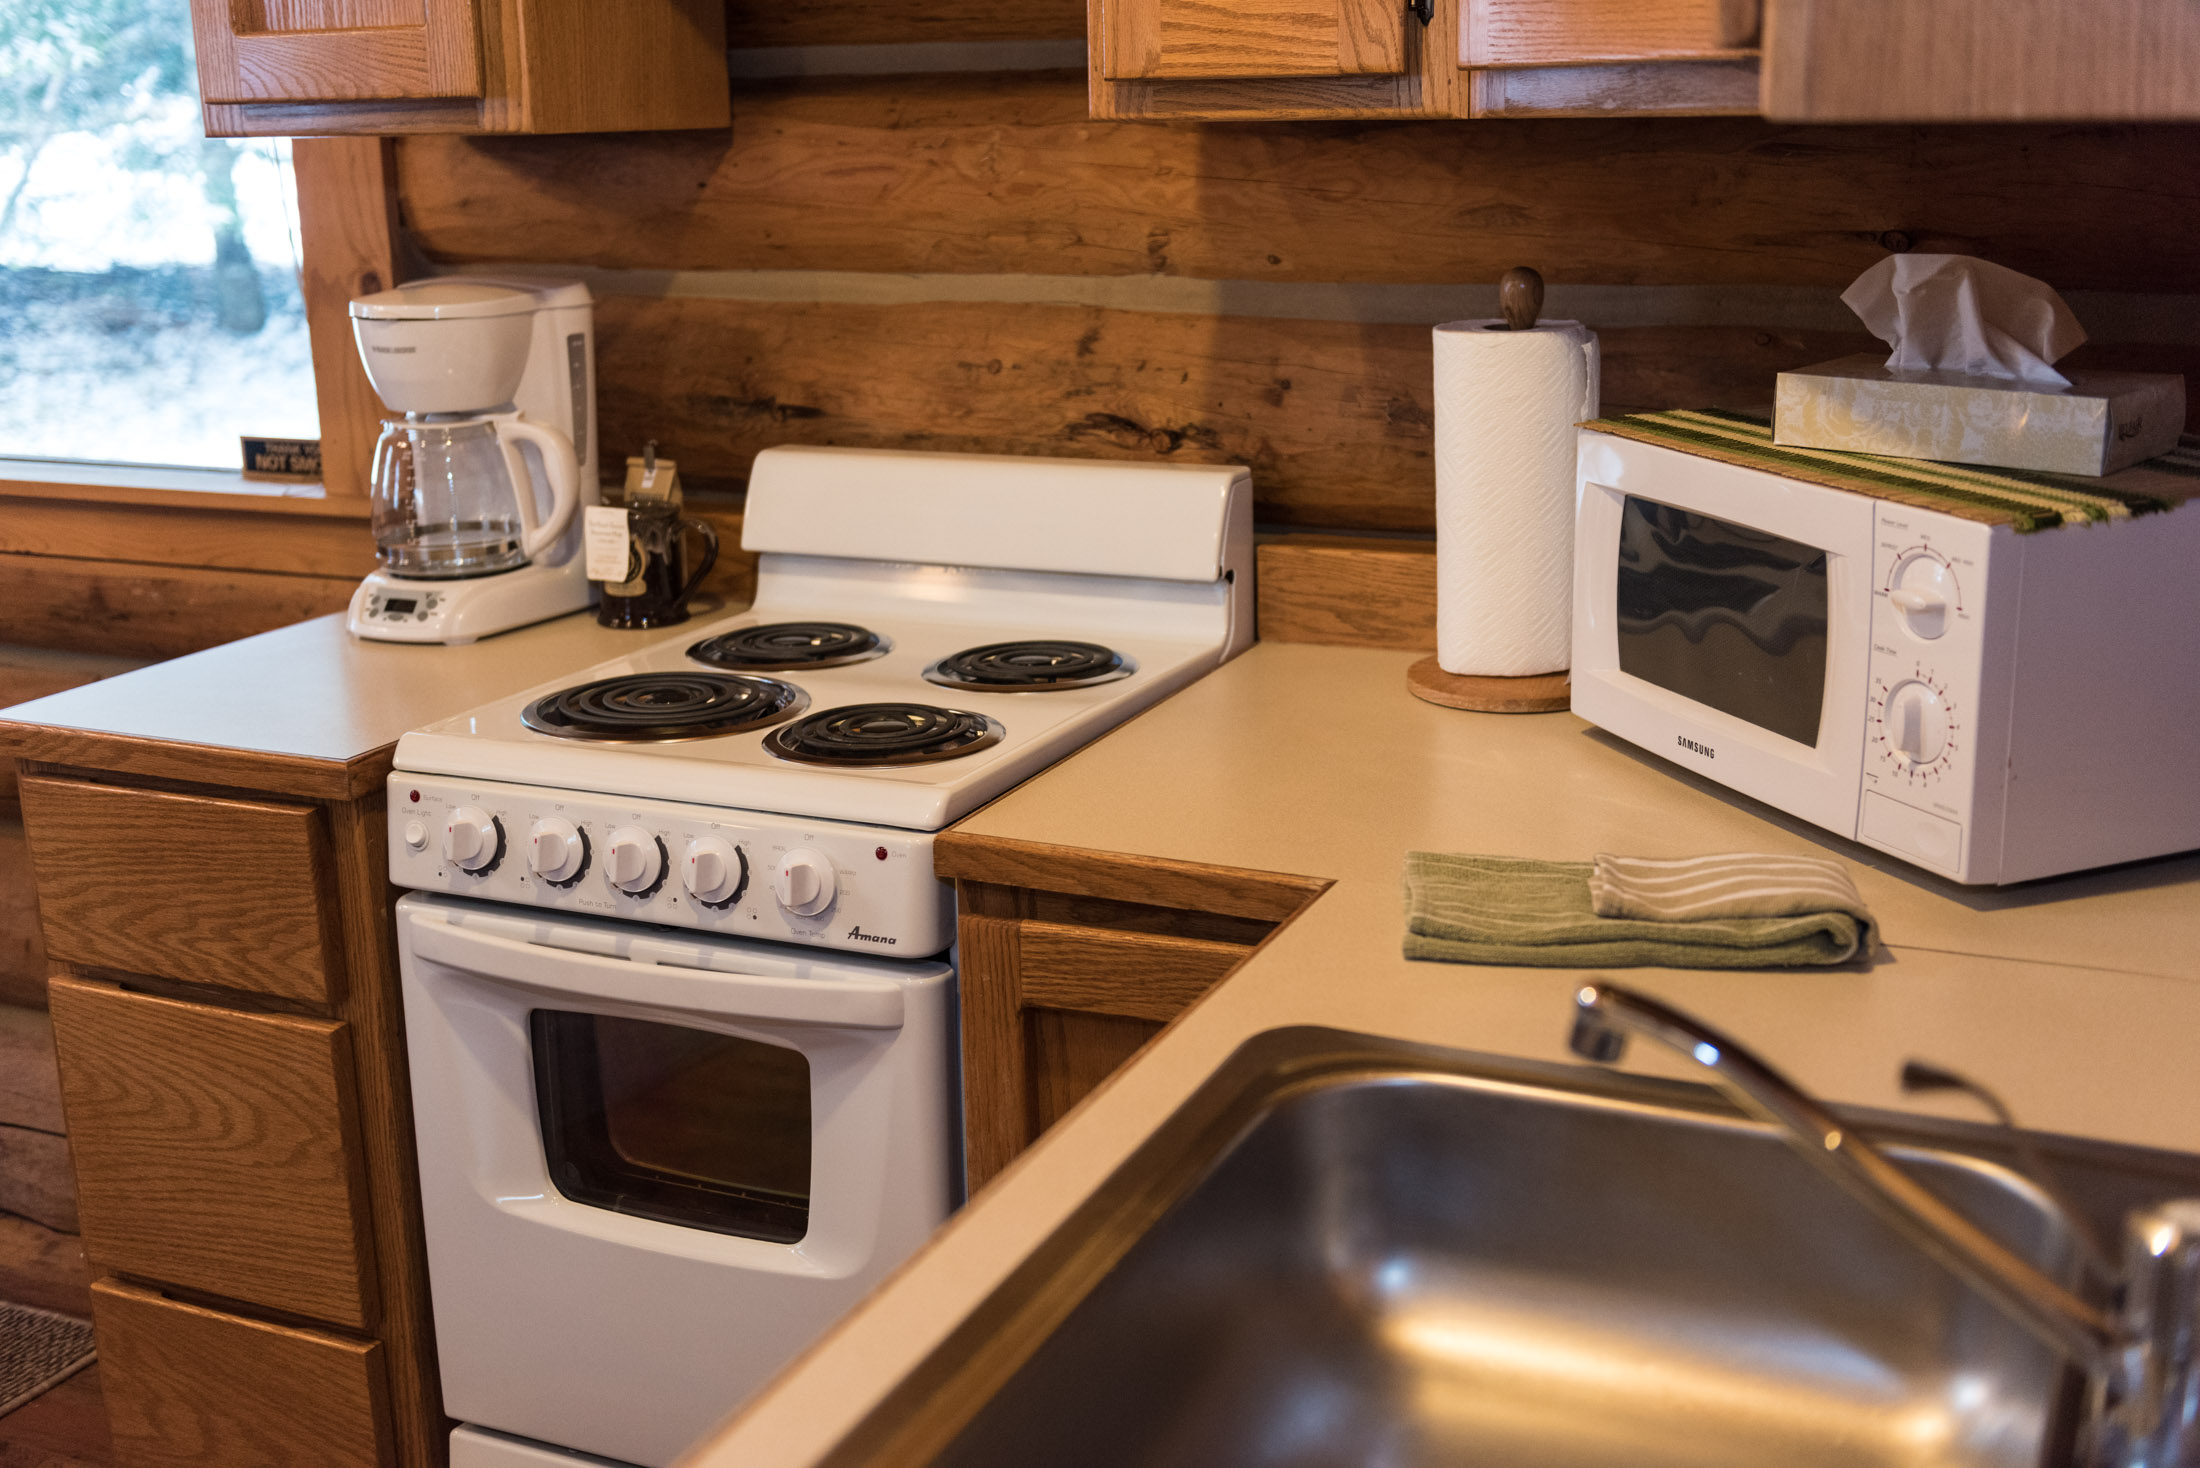 ... Stove; Western Pleasure Guest Ranch Settler Cabin Kitchenette ...